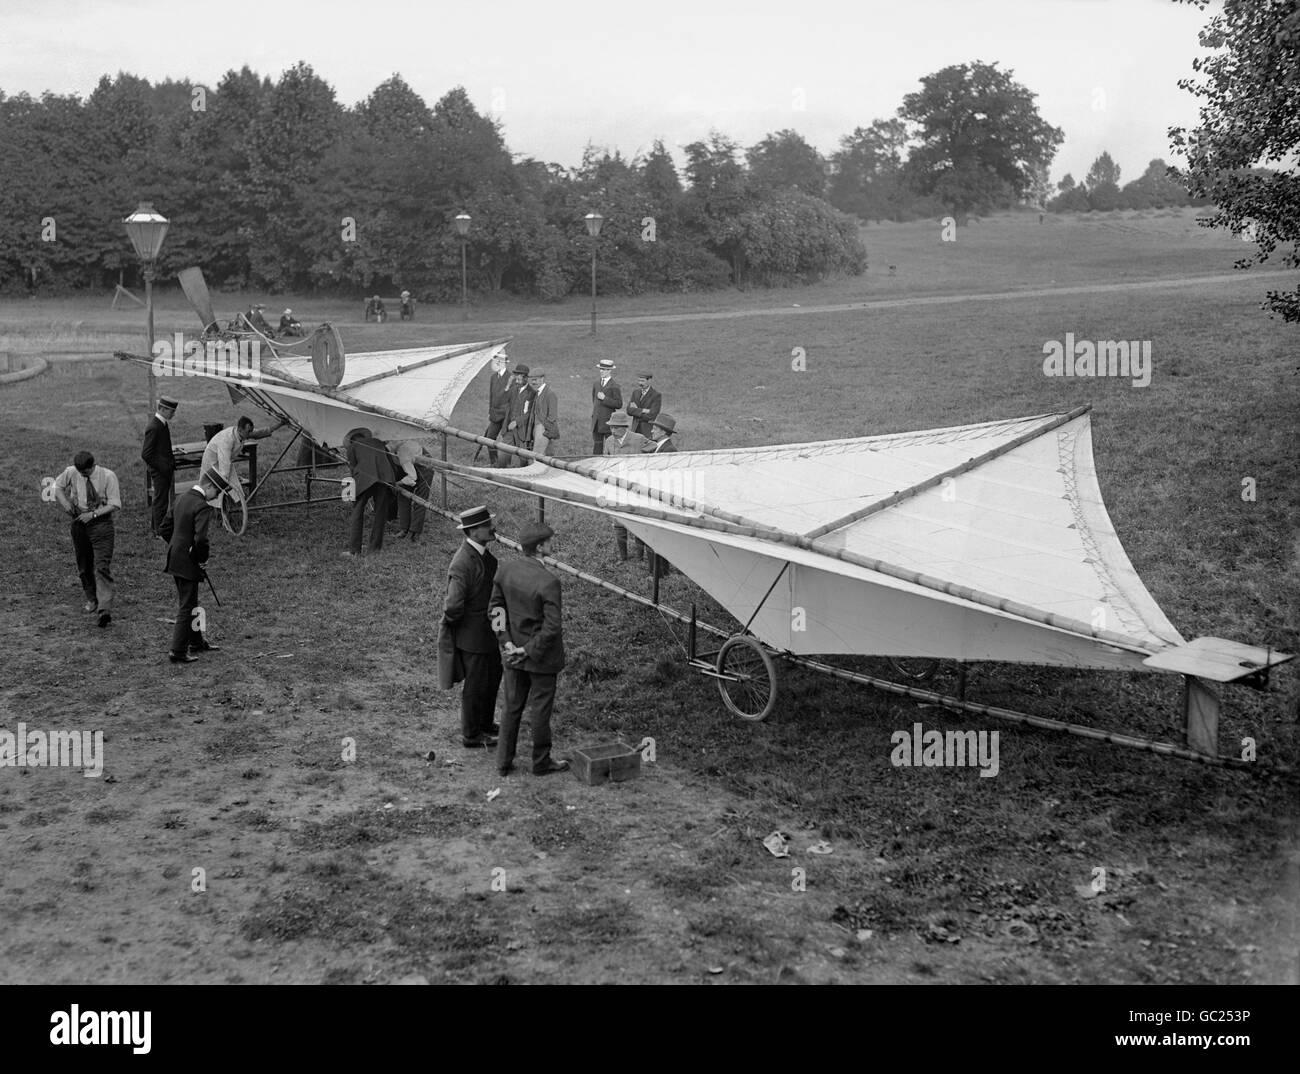 British Transport - Air - Air Shows - Doncaster - 1909 - Stock Image